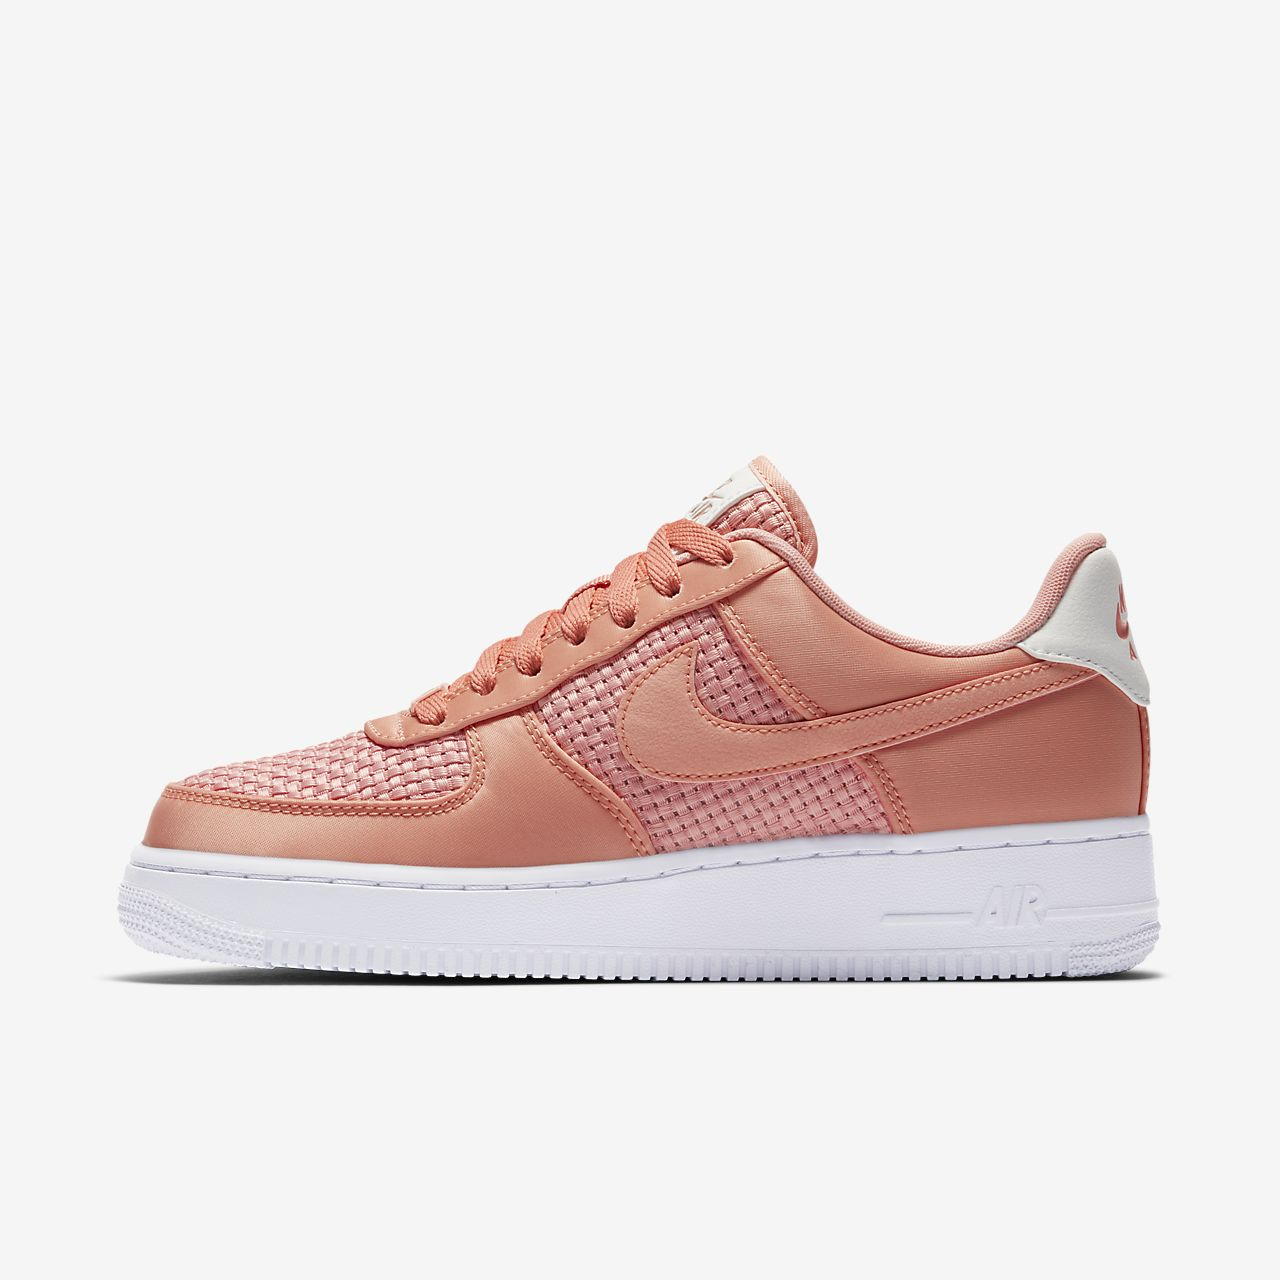 ... Chaussure Nike Air Force 1 07 SE pour Femme